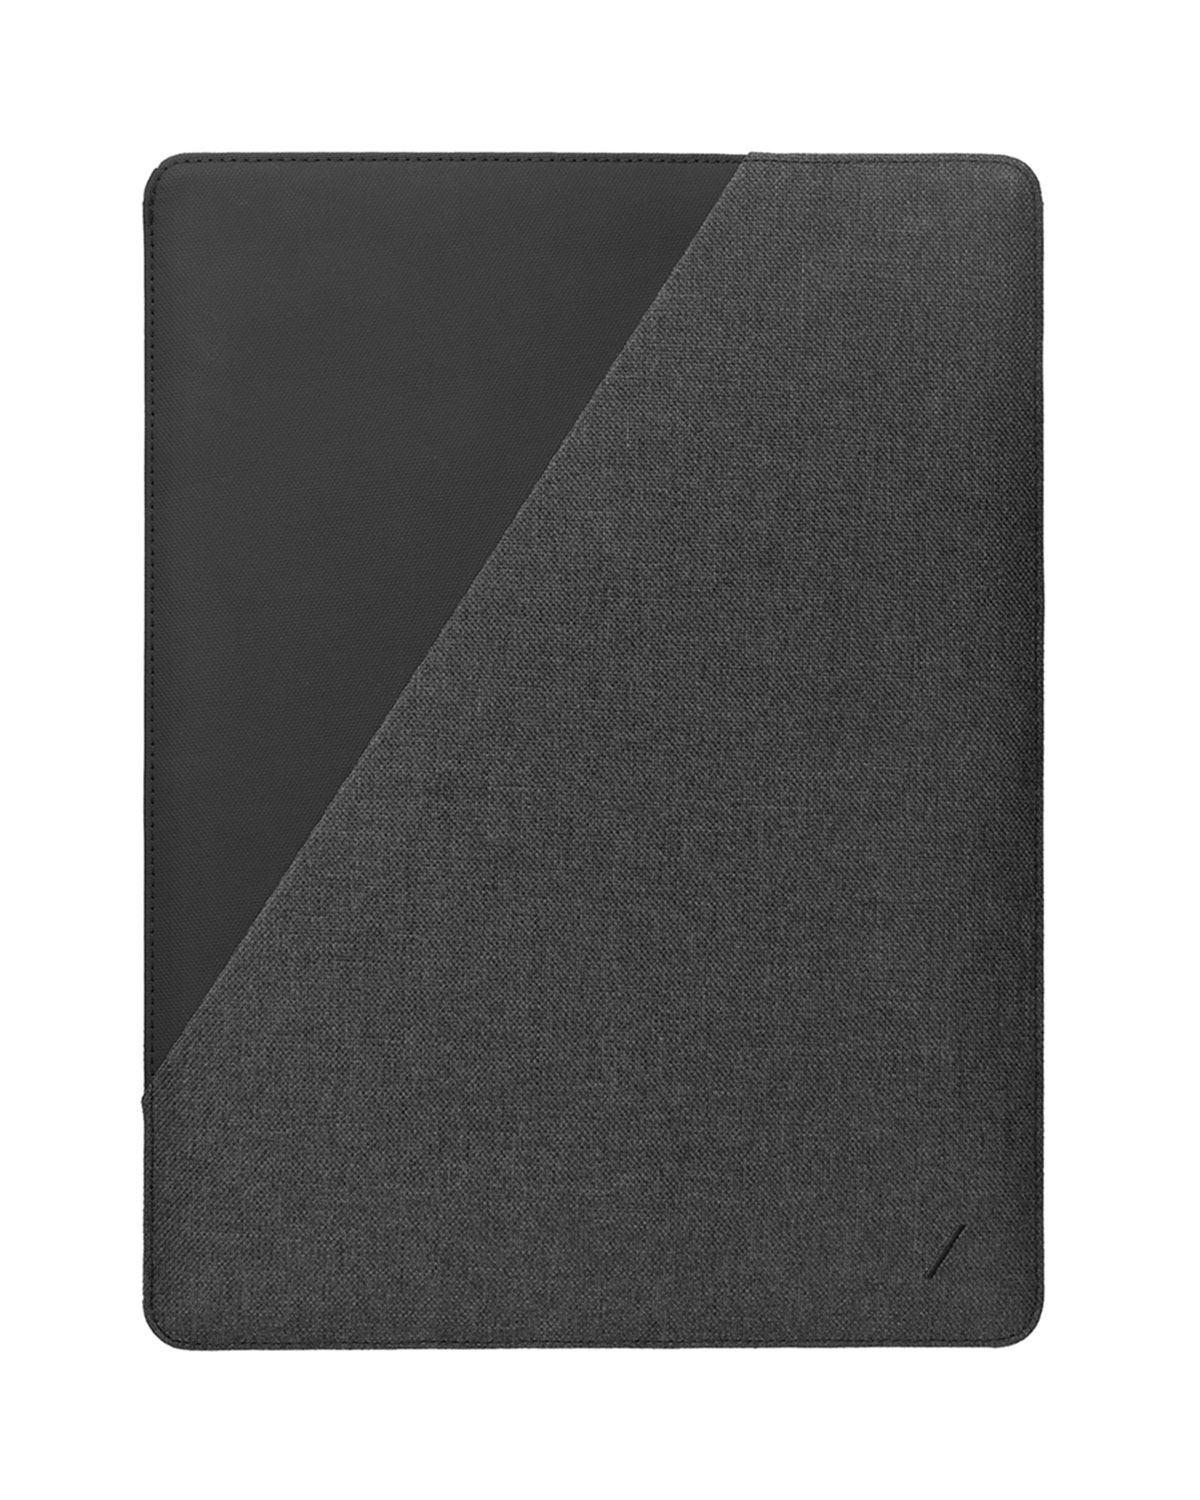 Native Union STOW Slim Sleeve For iPad - 11""